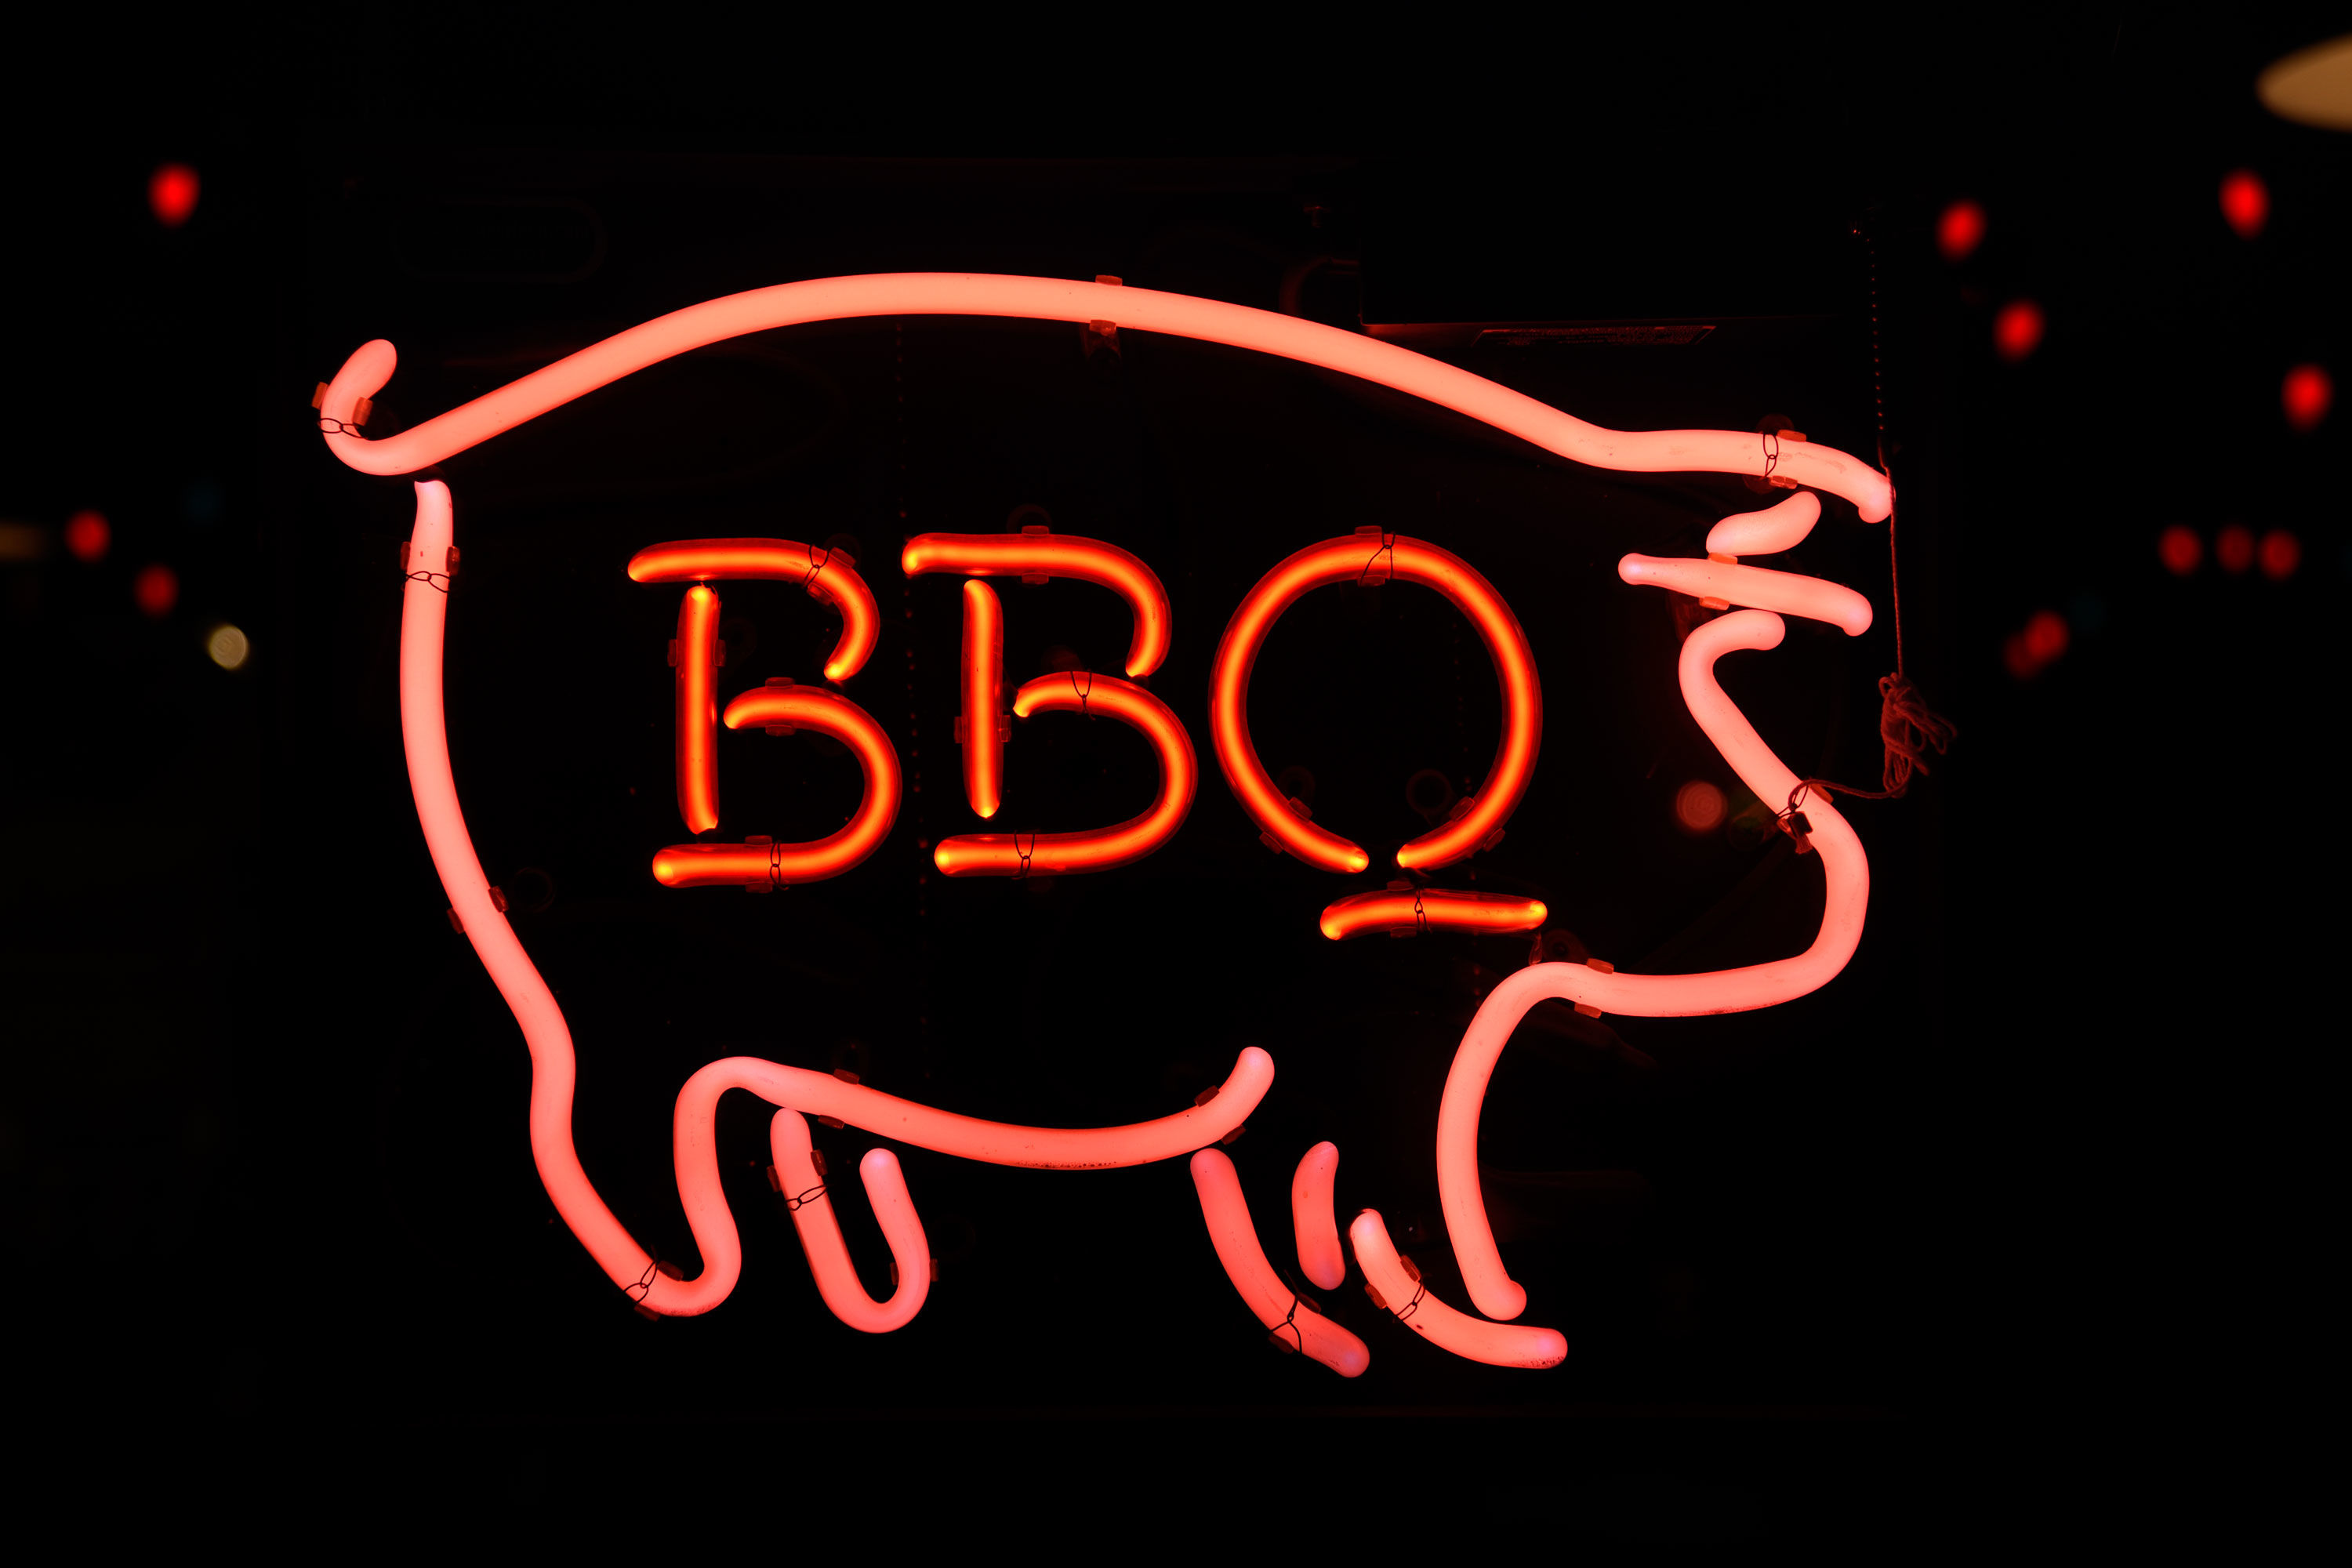 Barbecue Joints: What's Really In a Name?